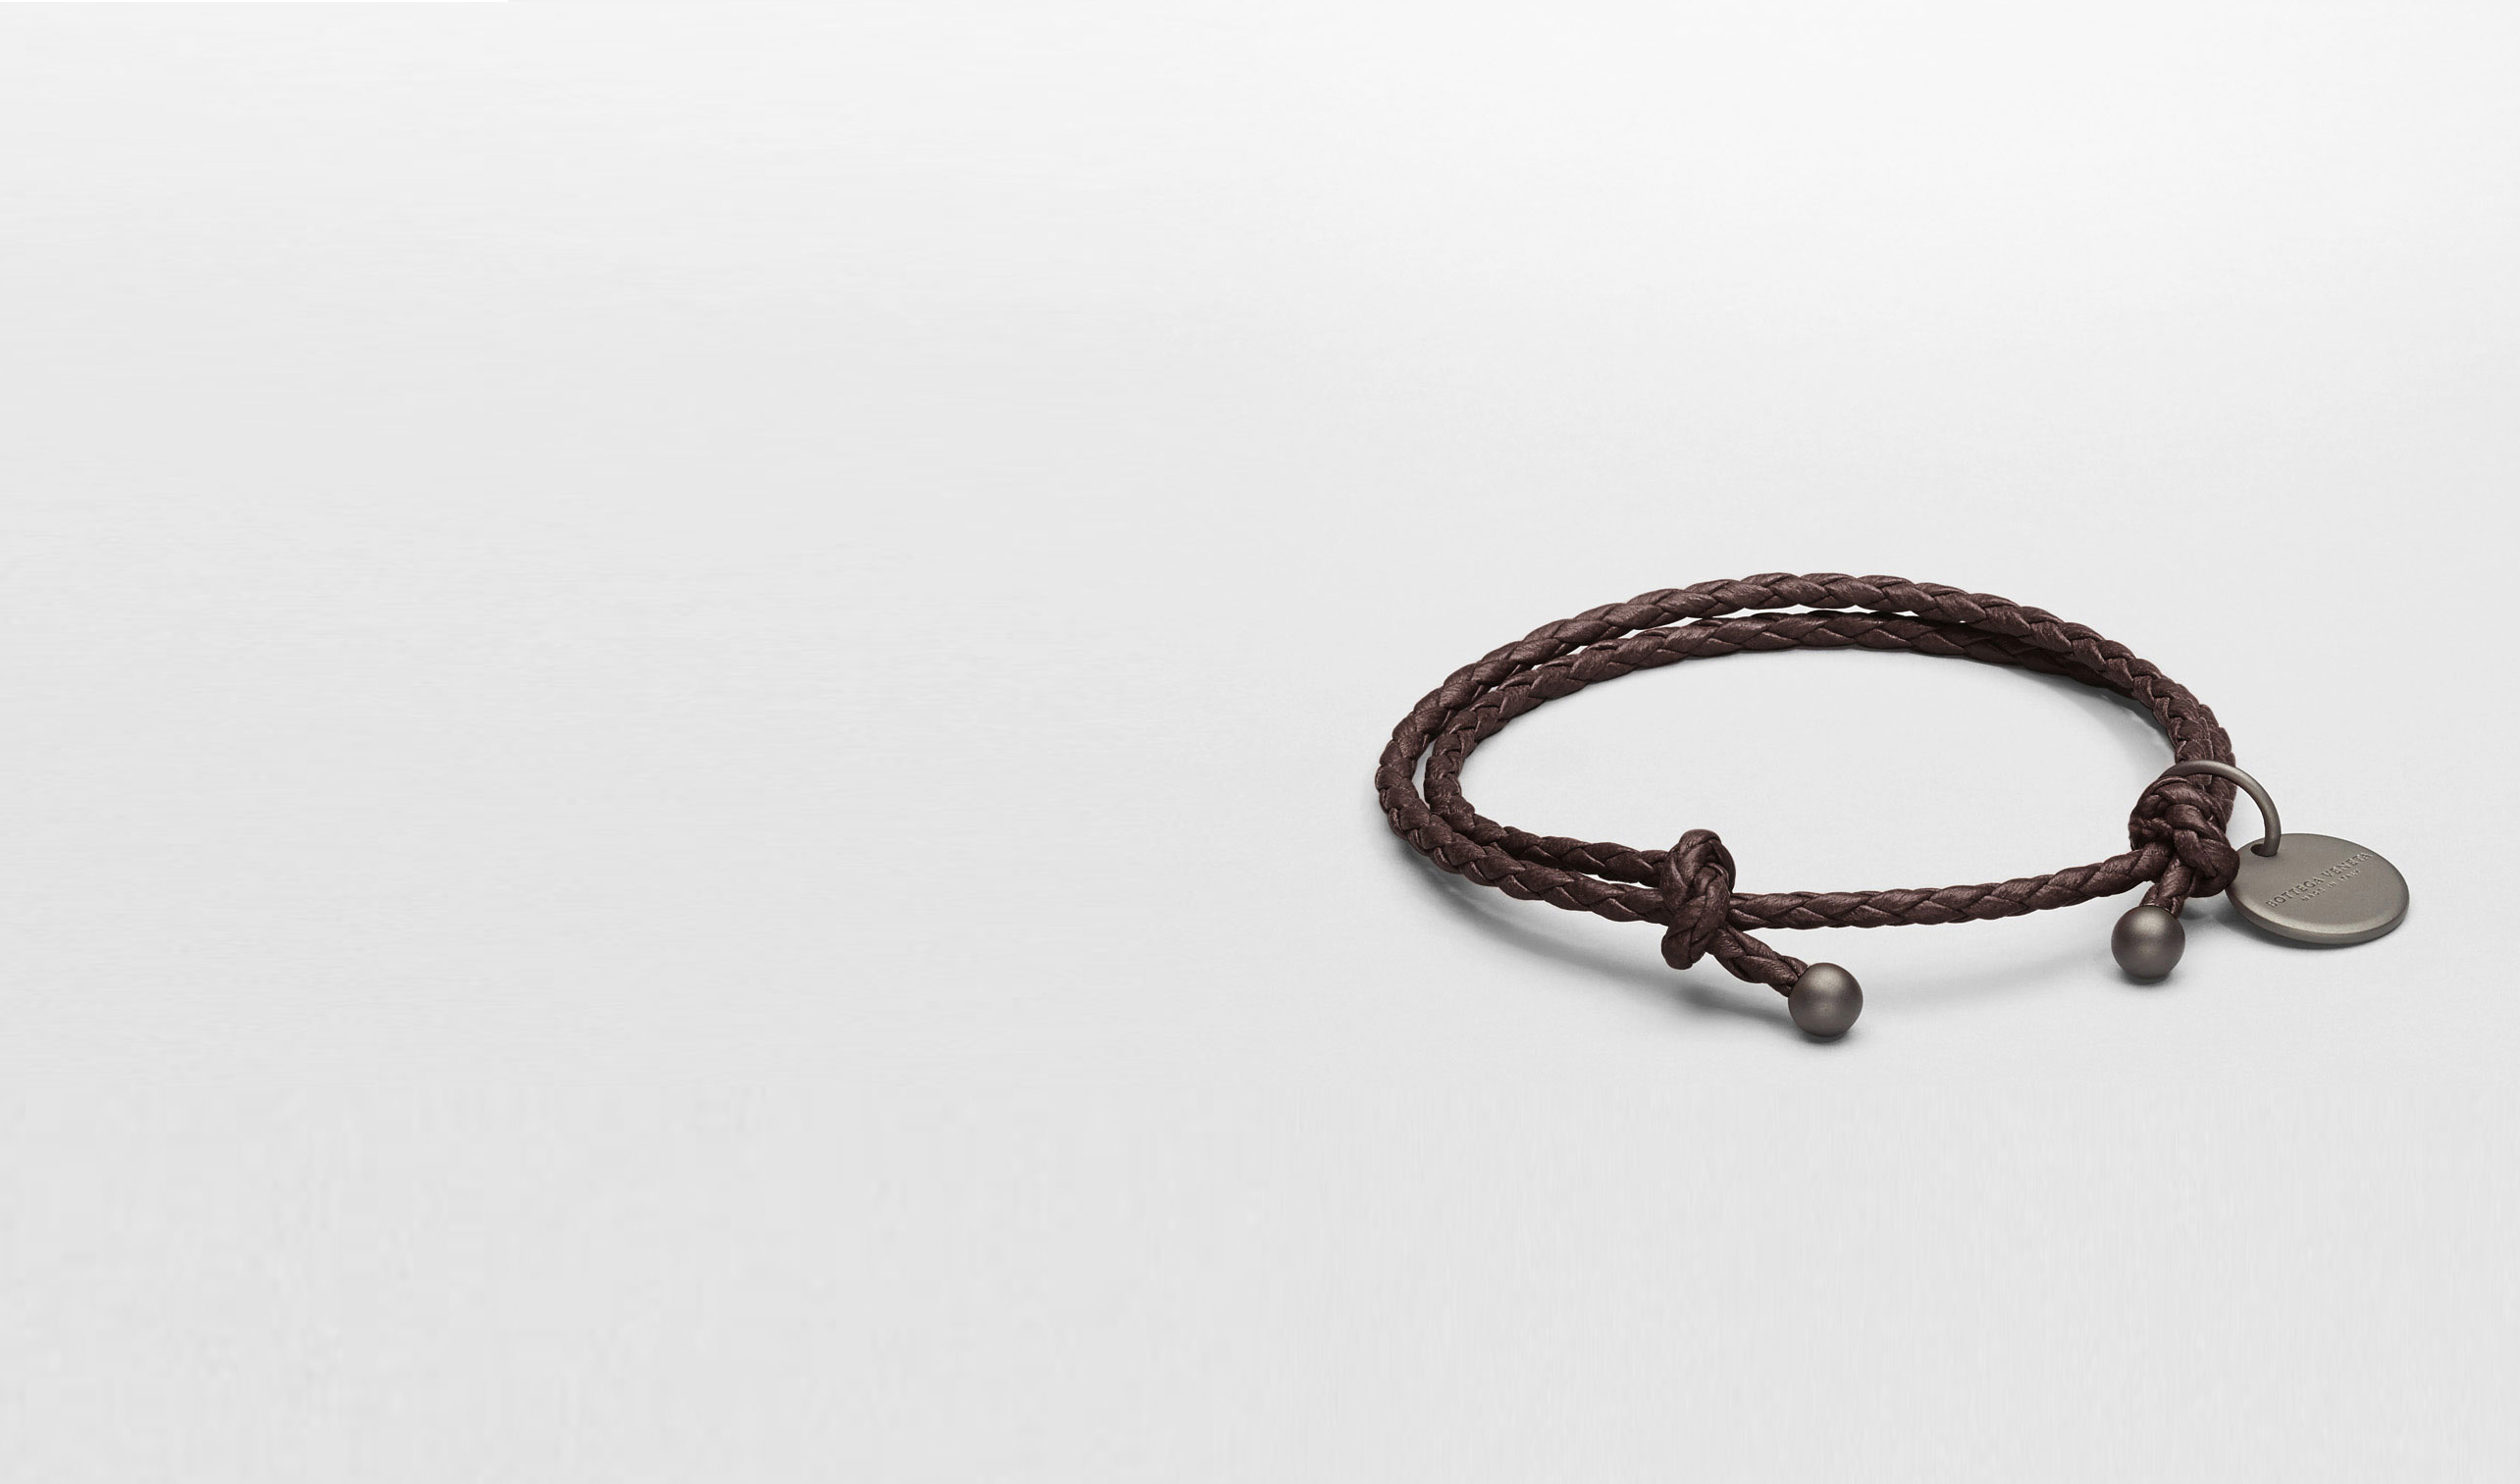 BOTTEGA VENETA Other Leather Accessory E Ebano Intrecciato Nappa Bracelet pl